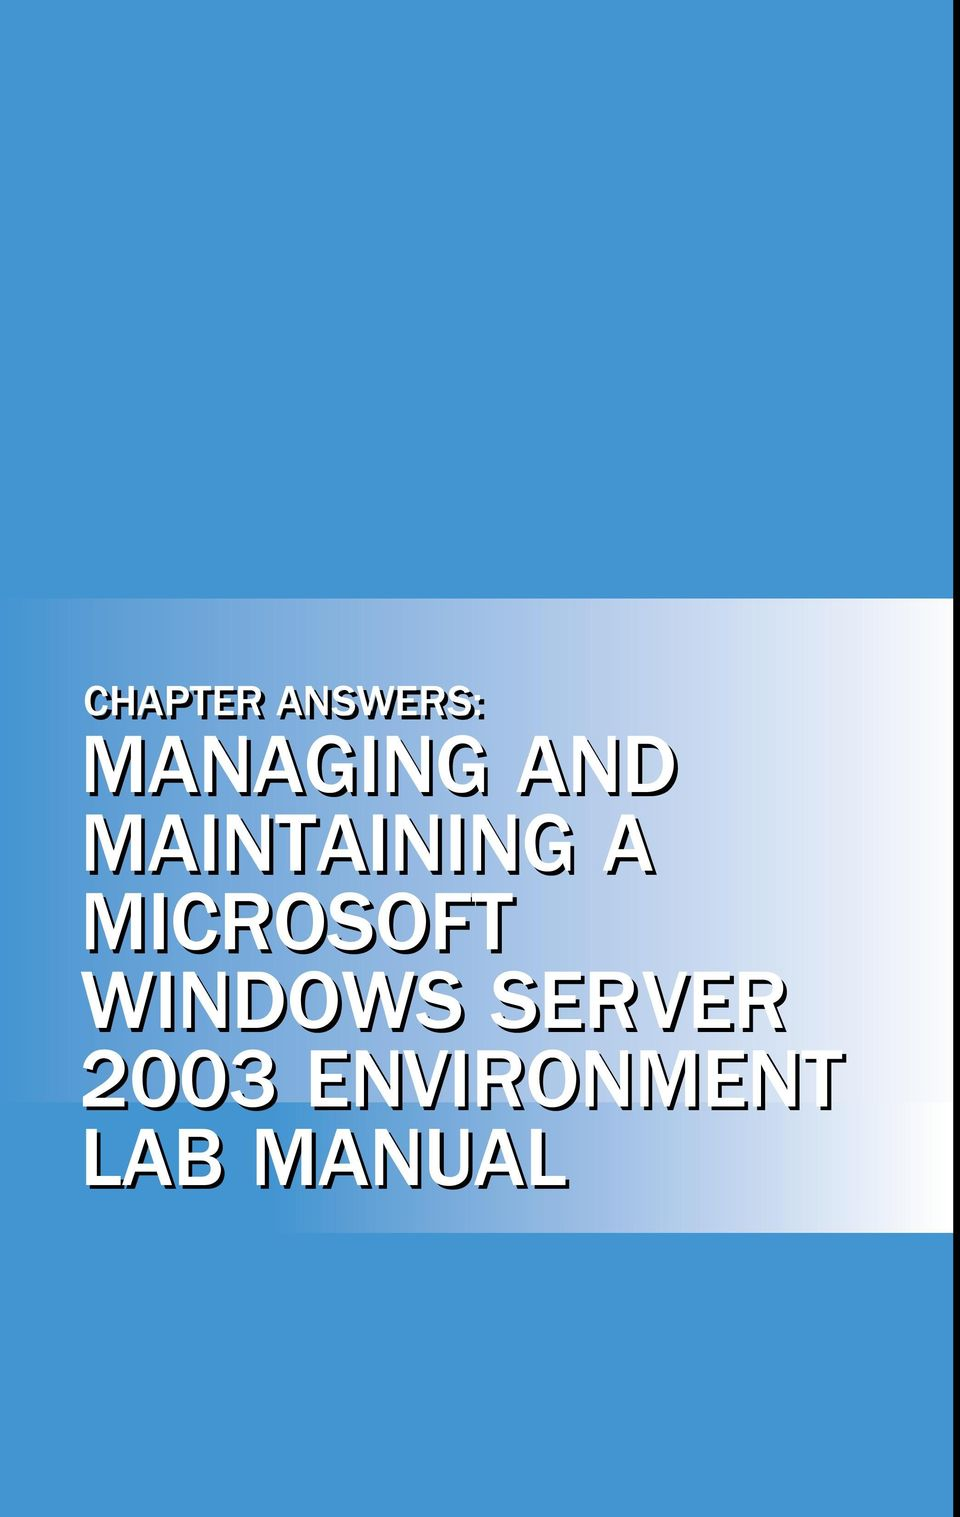 Chapter 2 lab manual